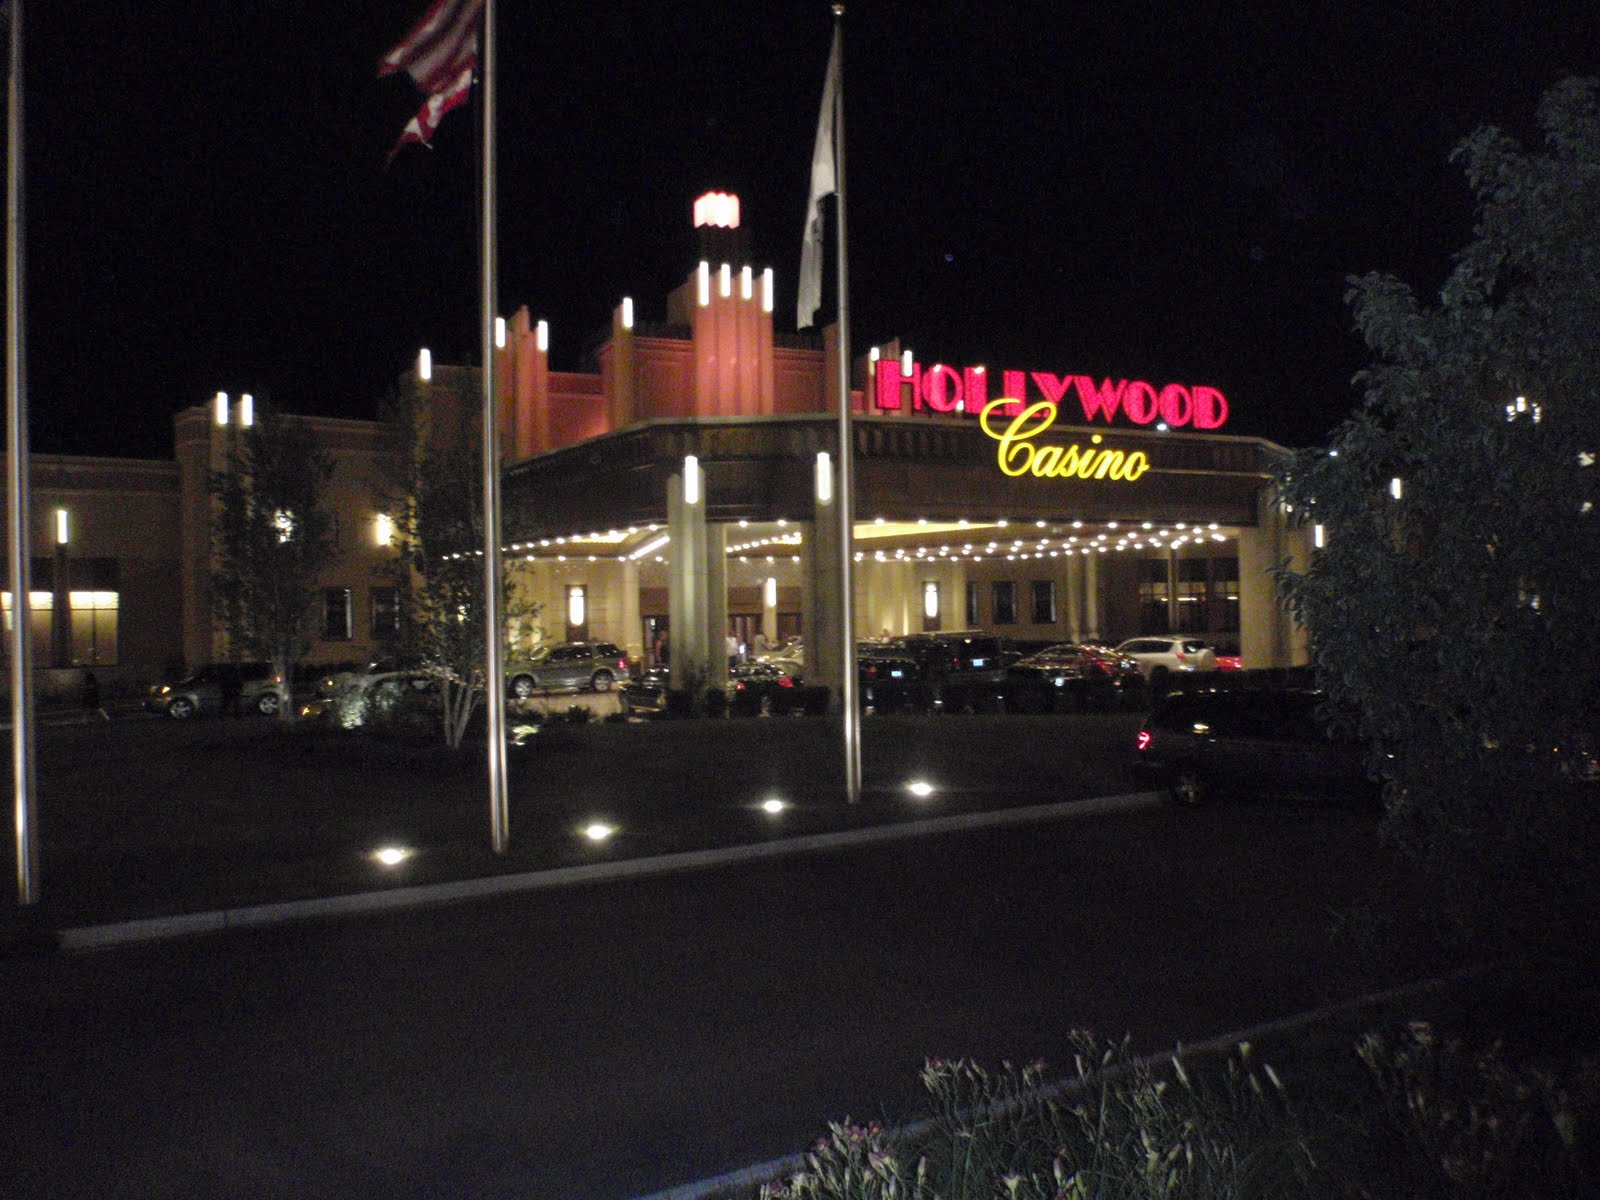 Hollywood casino in illinois excaliber hotel casino